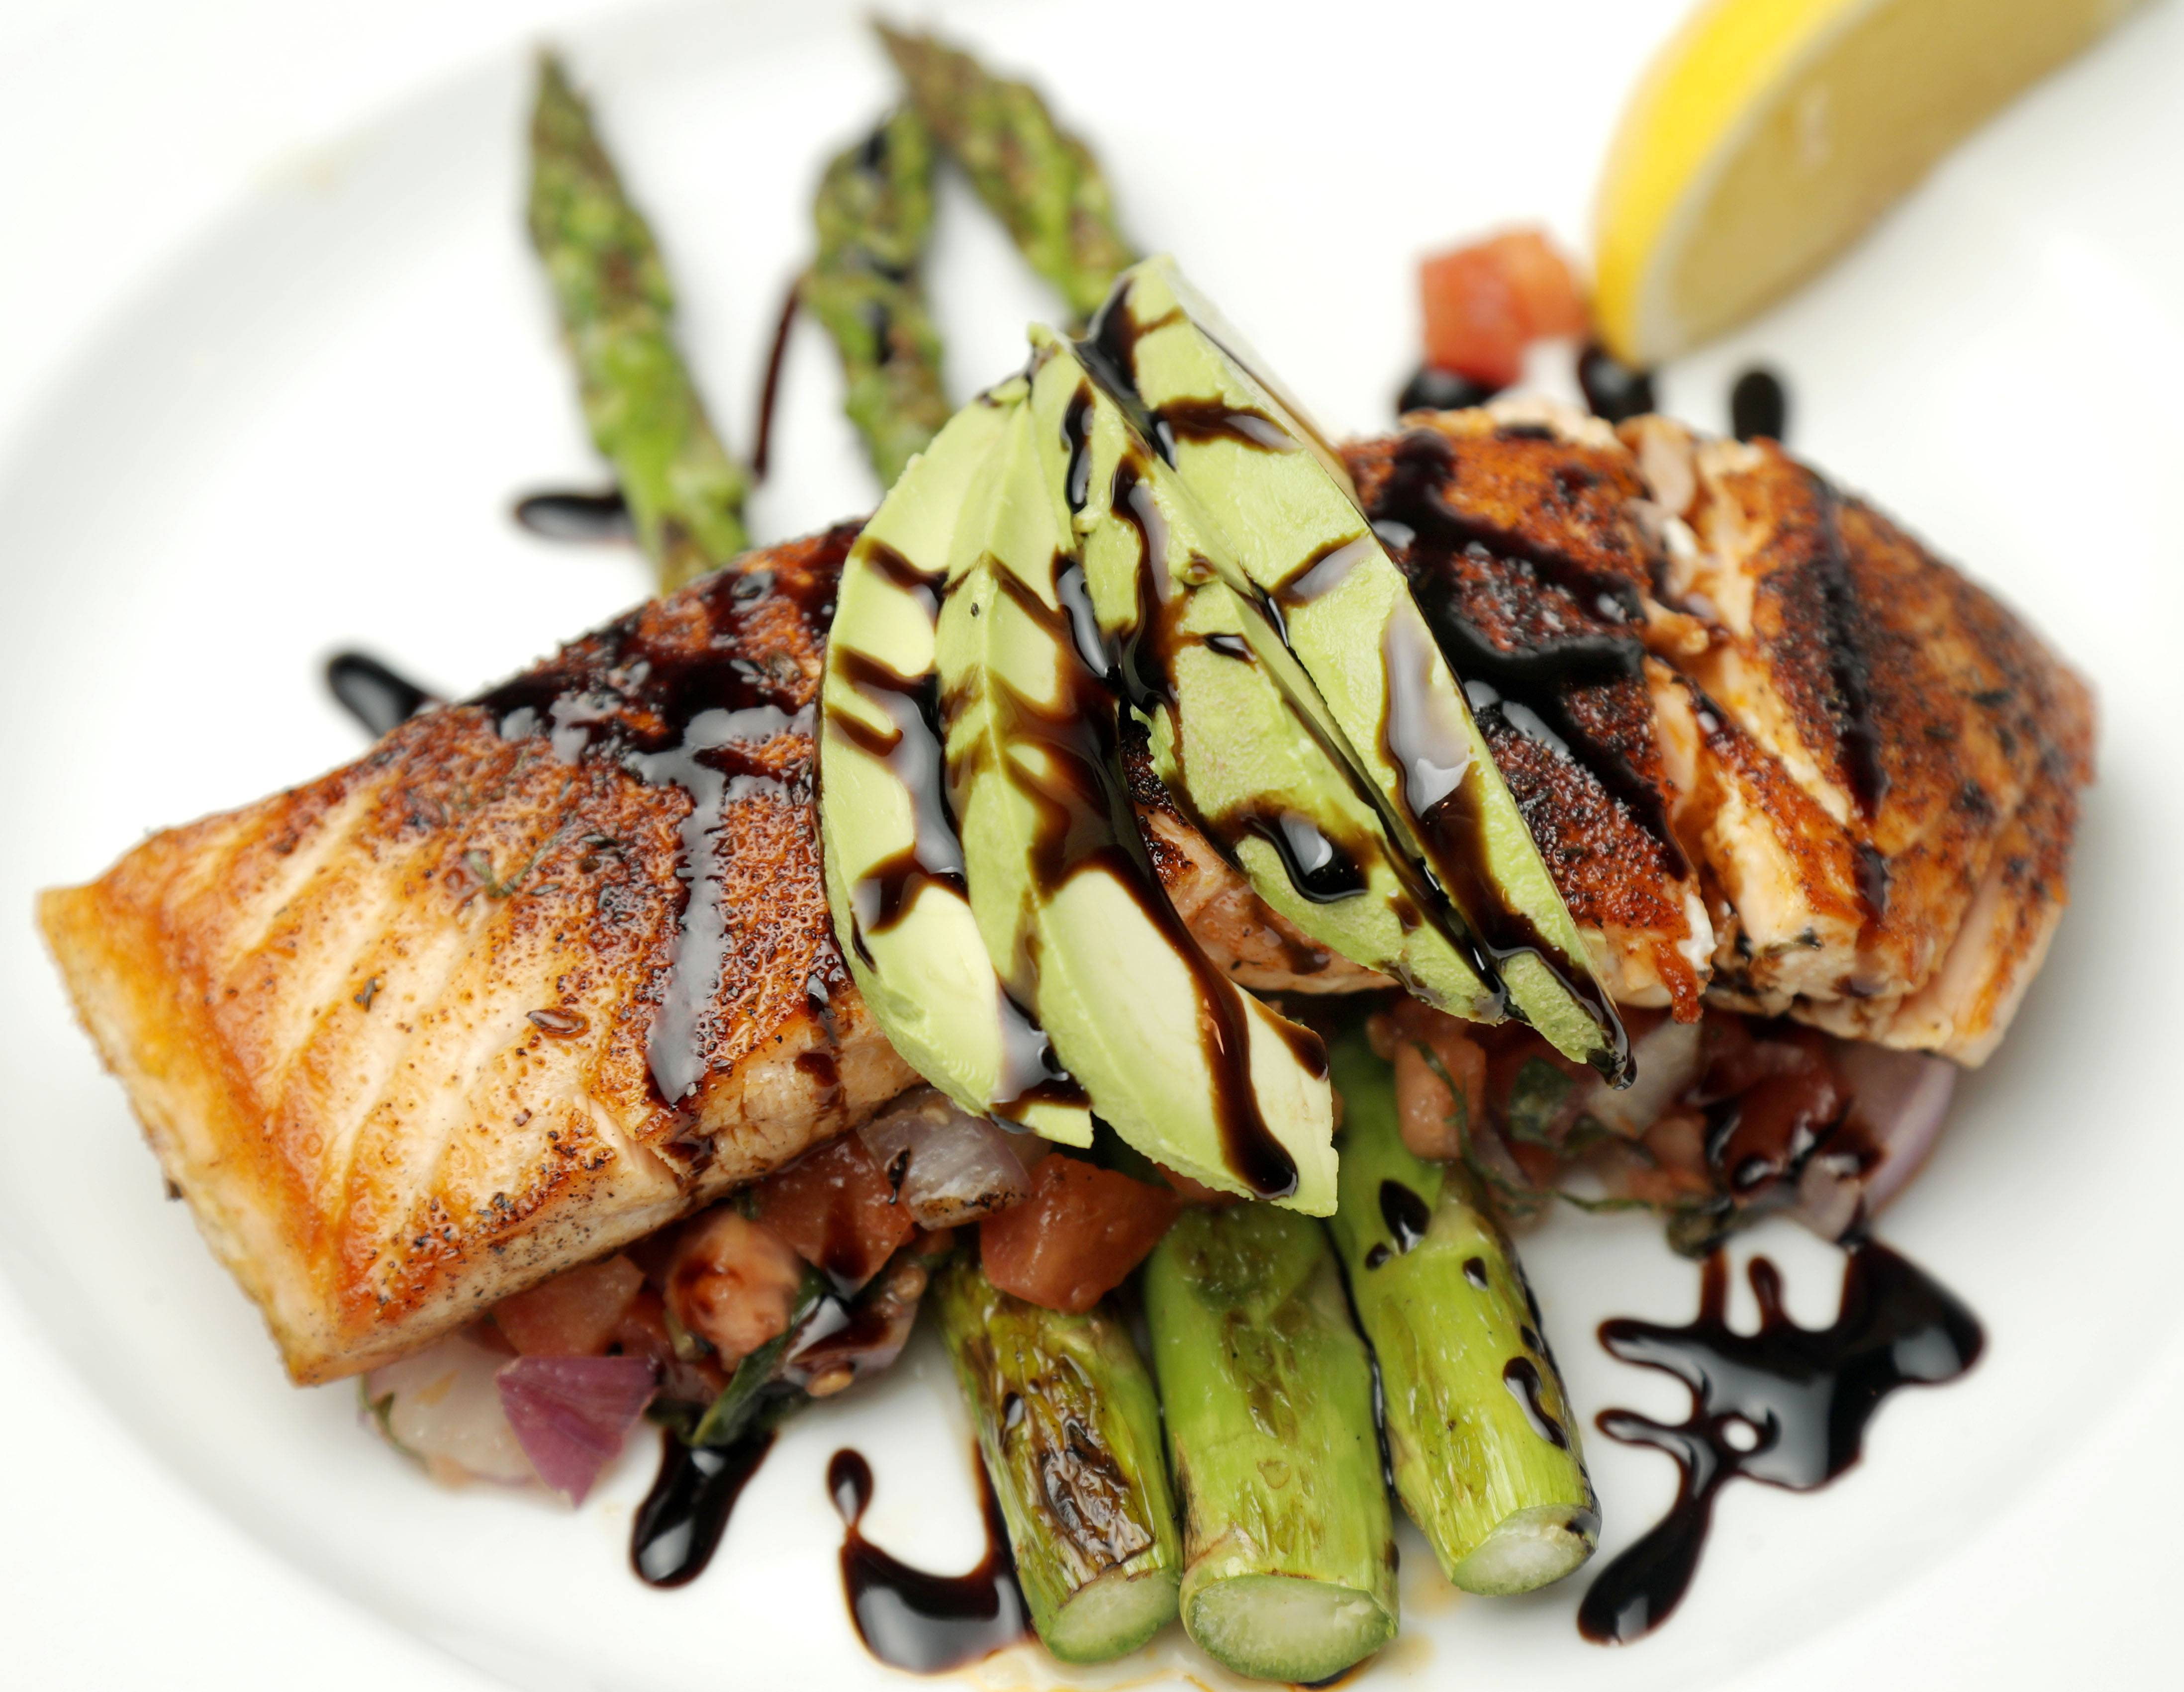 Scotty's on 21 serves up Francisco's salmon with grilled asparagus, avocado, diced tomato, red onion and balsamic glaze at the Vernon Hills restaurant.